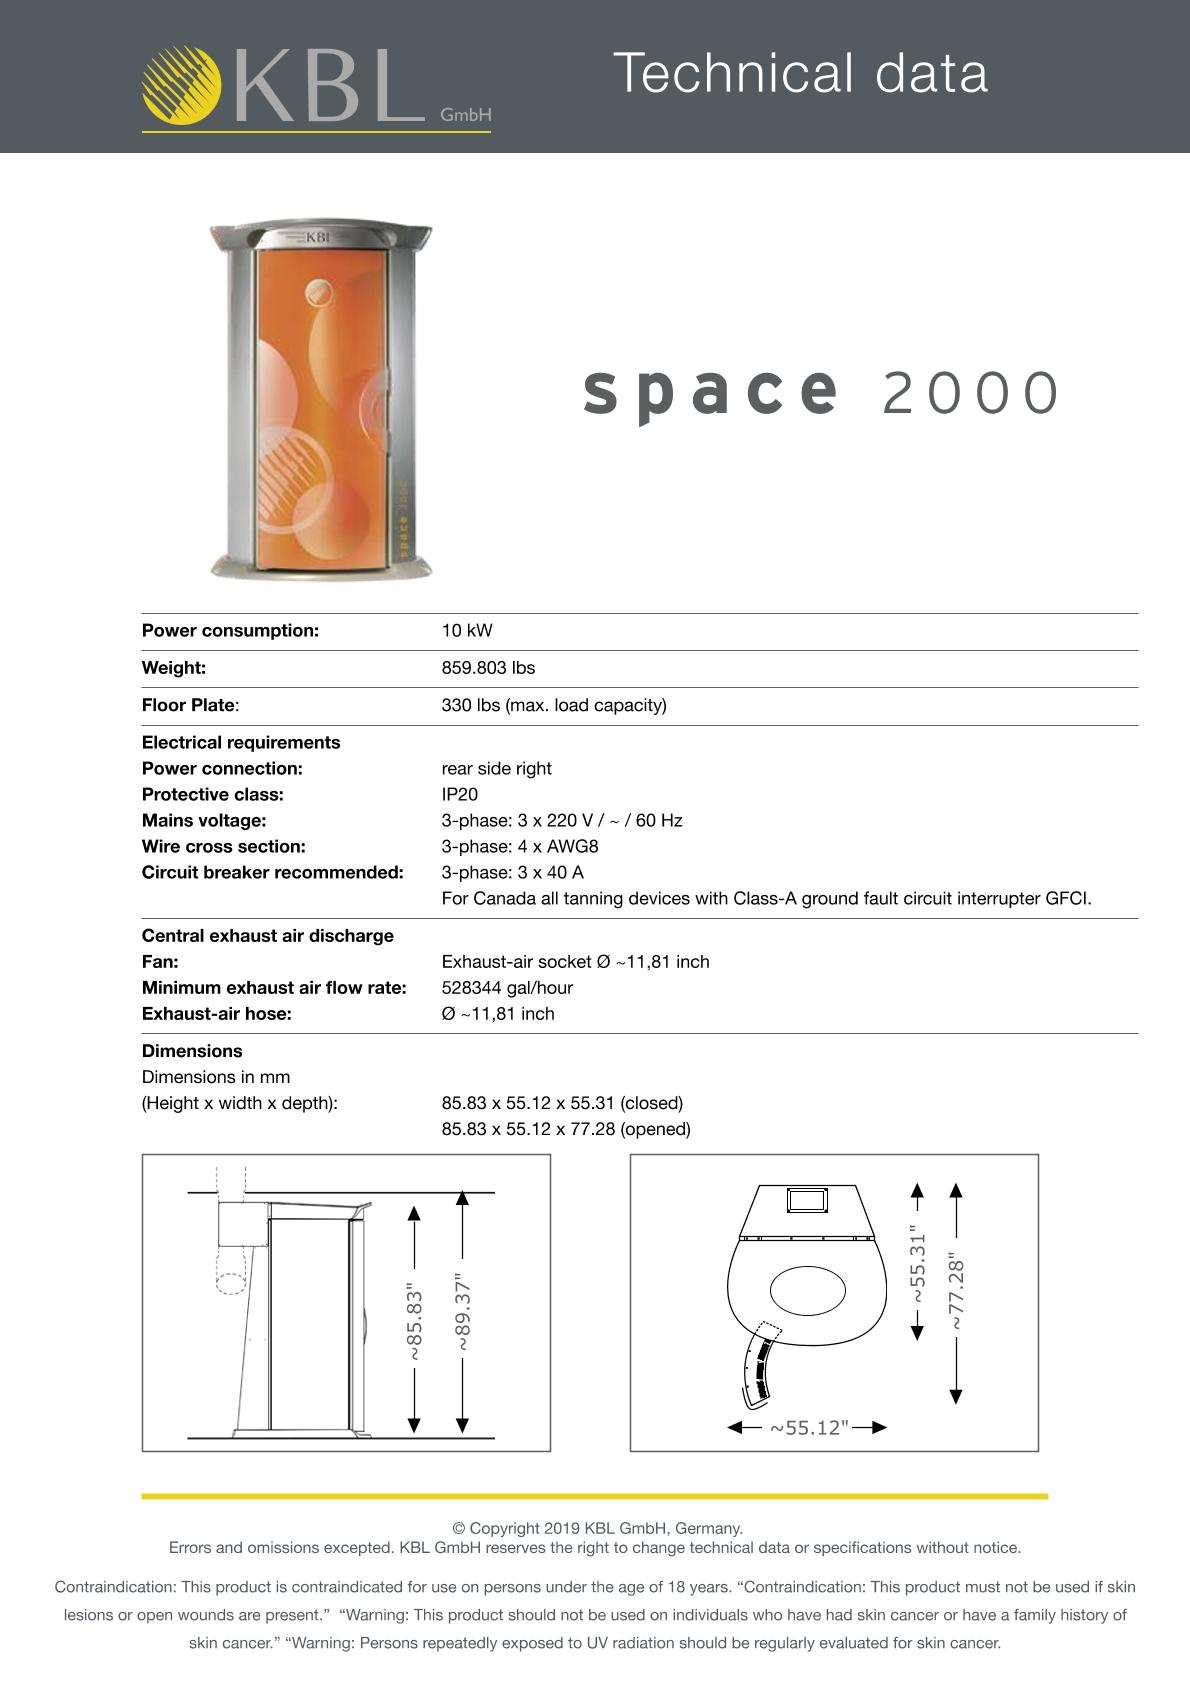 DS_space_2000-en-us.pdf